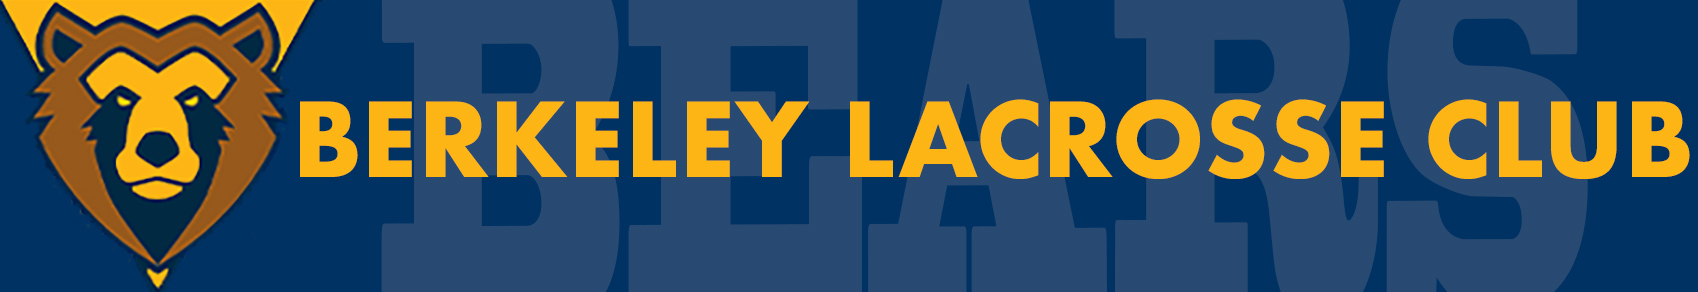 Berkeley Lacrosse Club, Lacrosse, Goal, Field